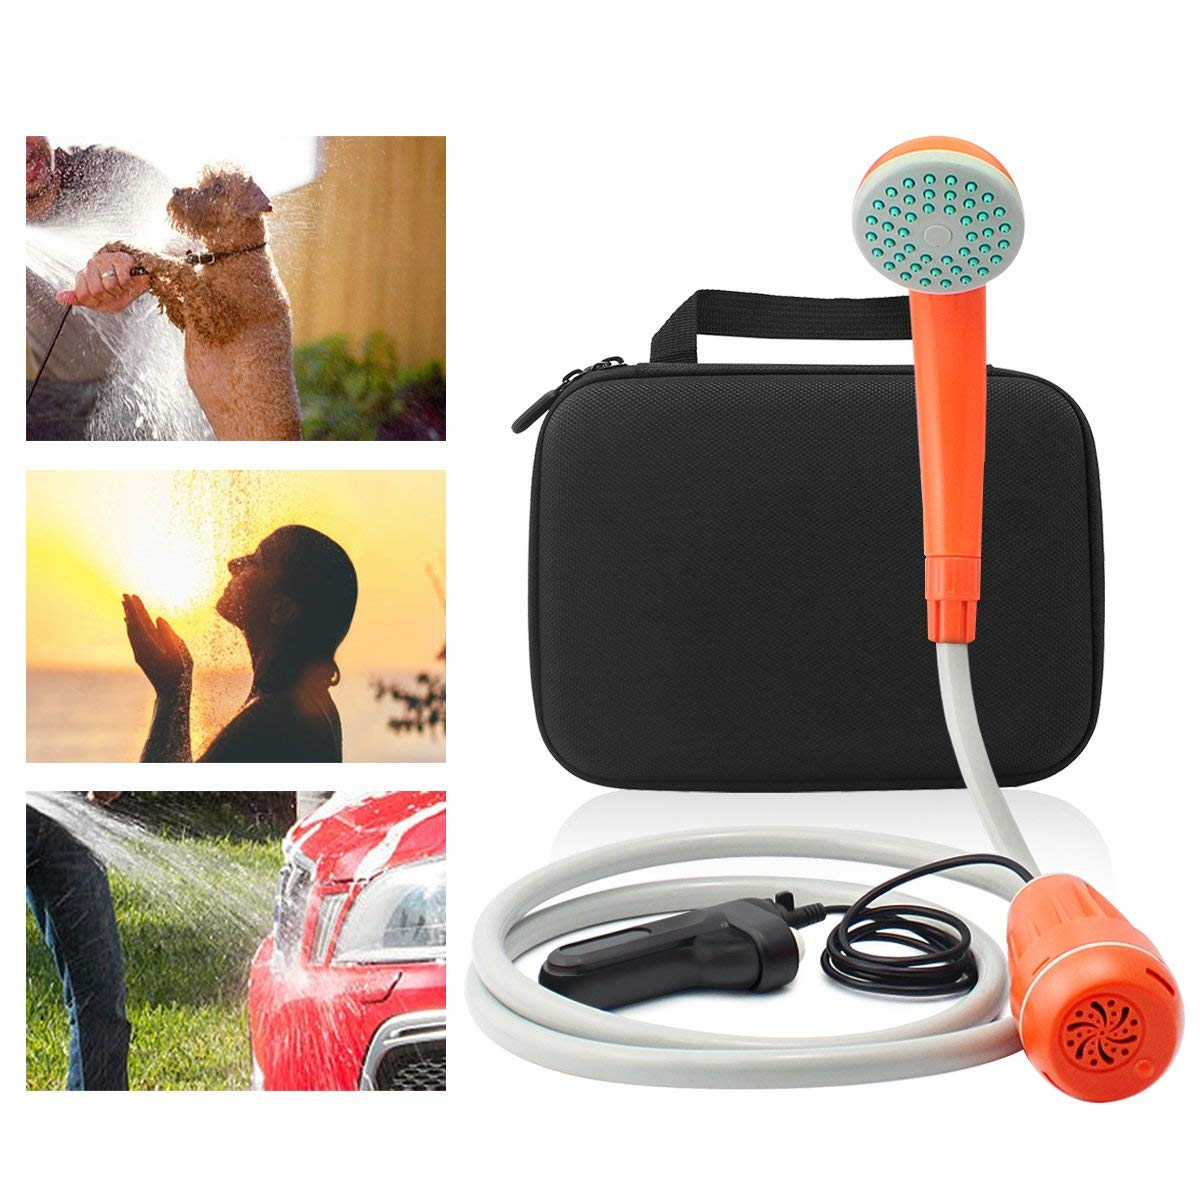 Bearham Portable Outdoor Shower with Carry Bag, Rechargeable Battery Powered Shower, Handheld Electric Shower for Outdoor, Camping, Traveling, Hiking, Pet Cleaning